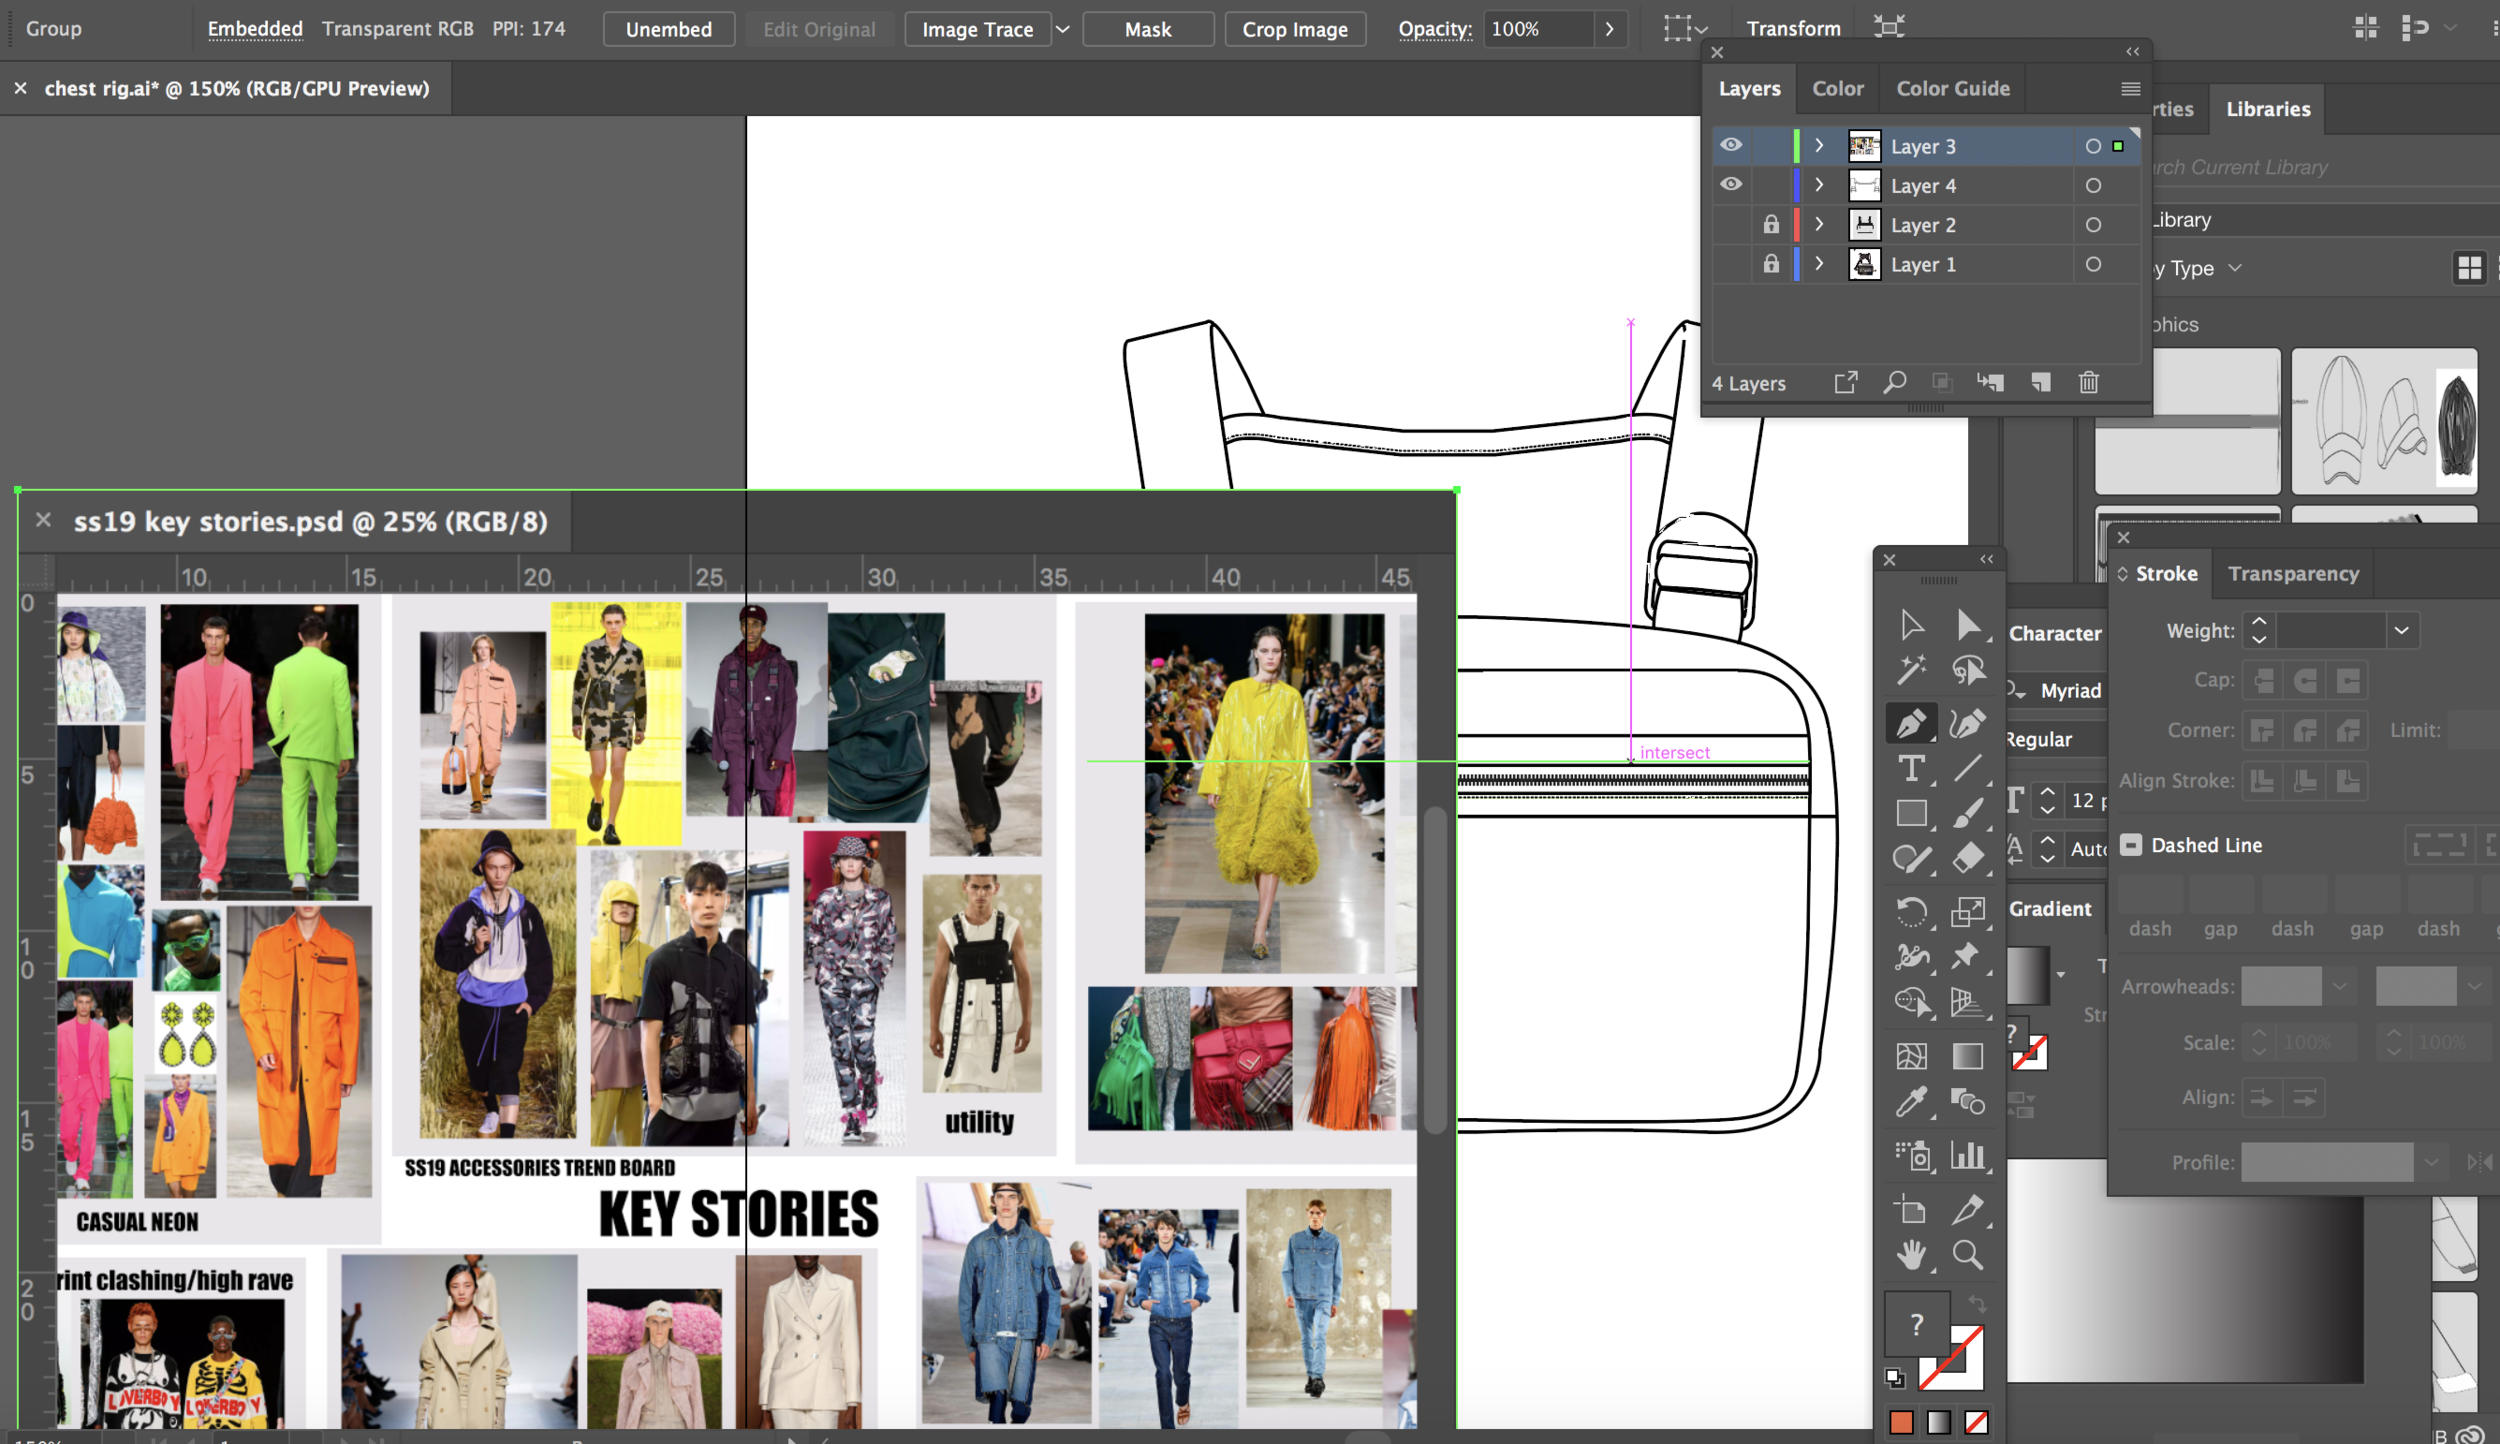 Dec 06, 2018  Whilst enjoying the festive season, our studio is getting ready for SS19 Developments!Working with key stories gathered from the shows, our new season designs will be infused with neon, utility, head-to-toe digital prints and many more. Exciting!